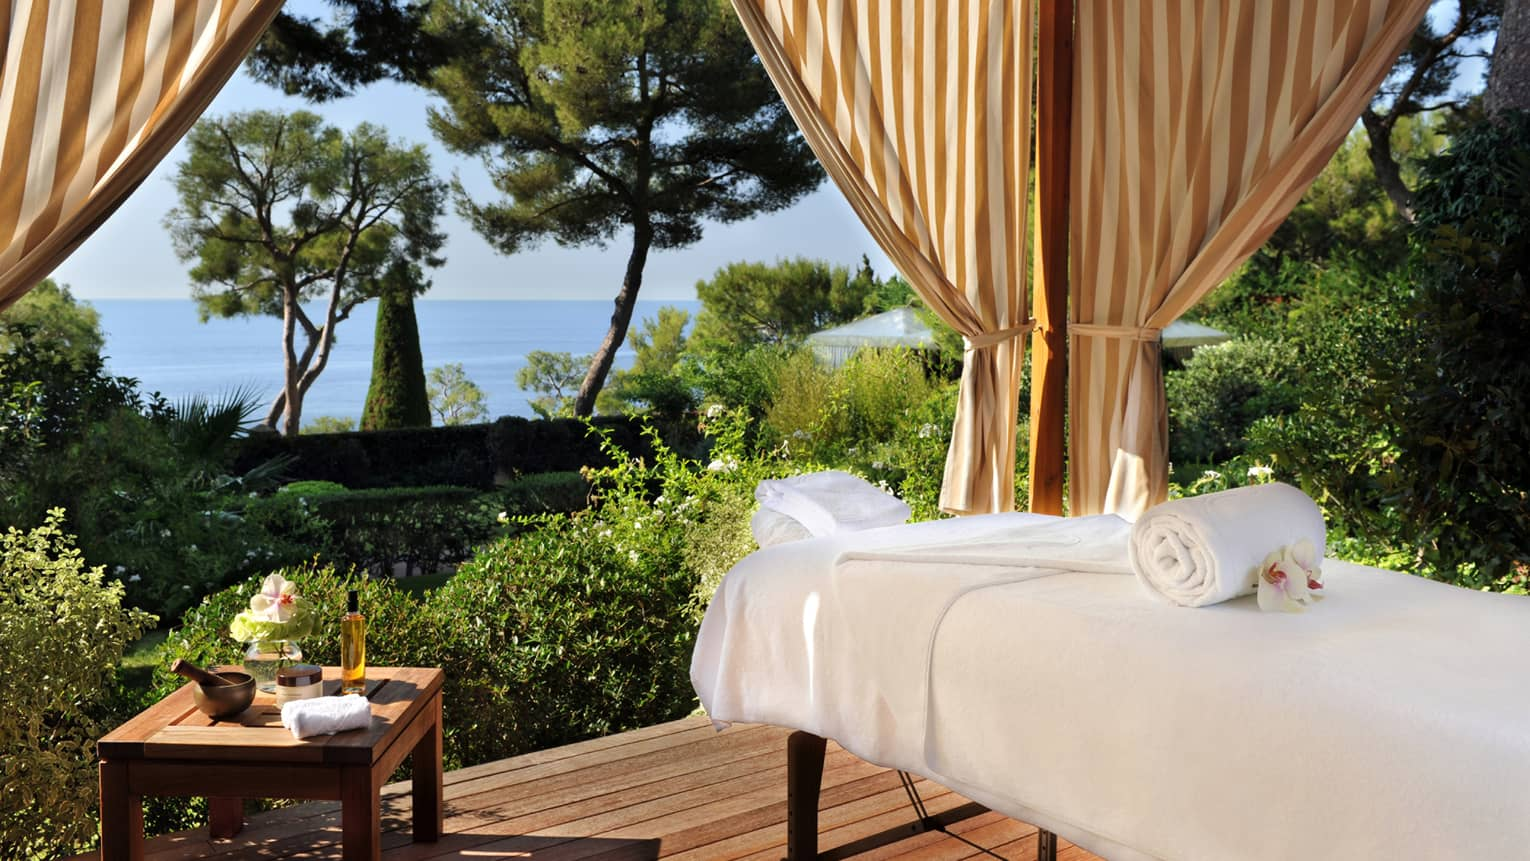 Massage bed on outdoor Spa pavilion overlooking gardens, sea